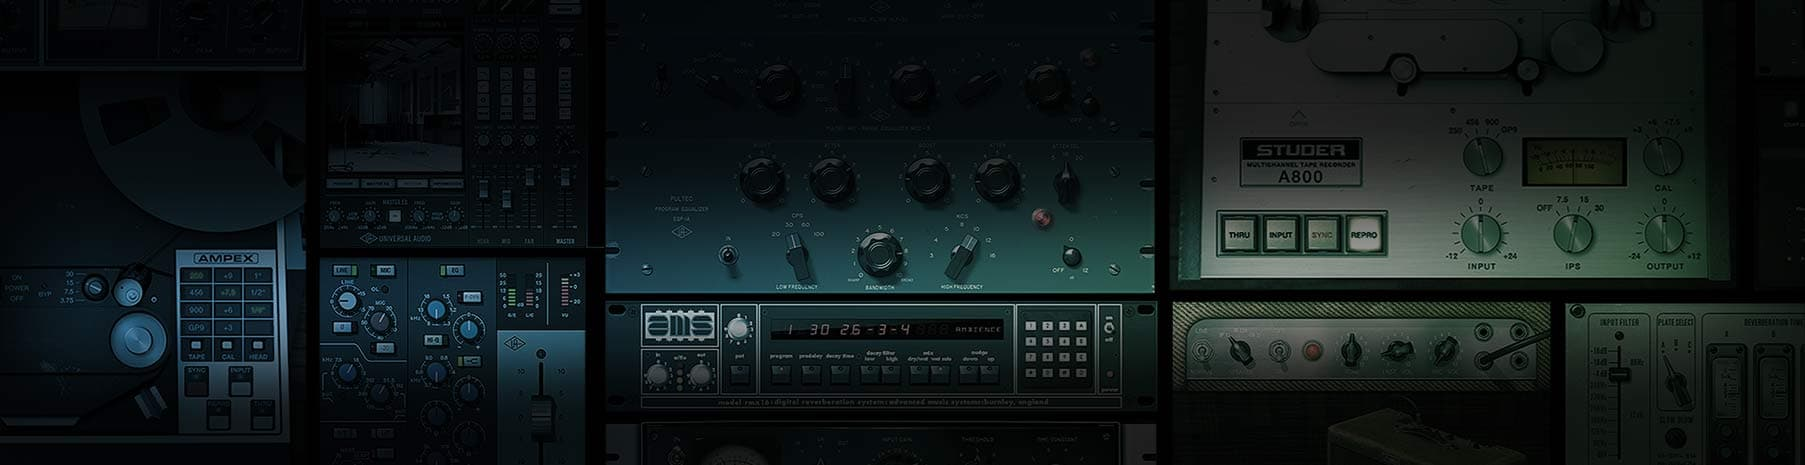 Plugin Bundles | UAD Audio Plugins | Universal Audio